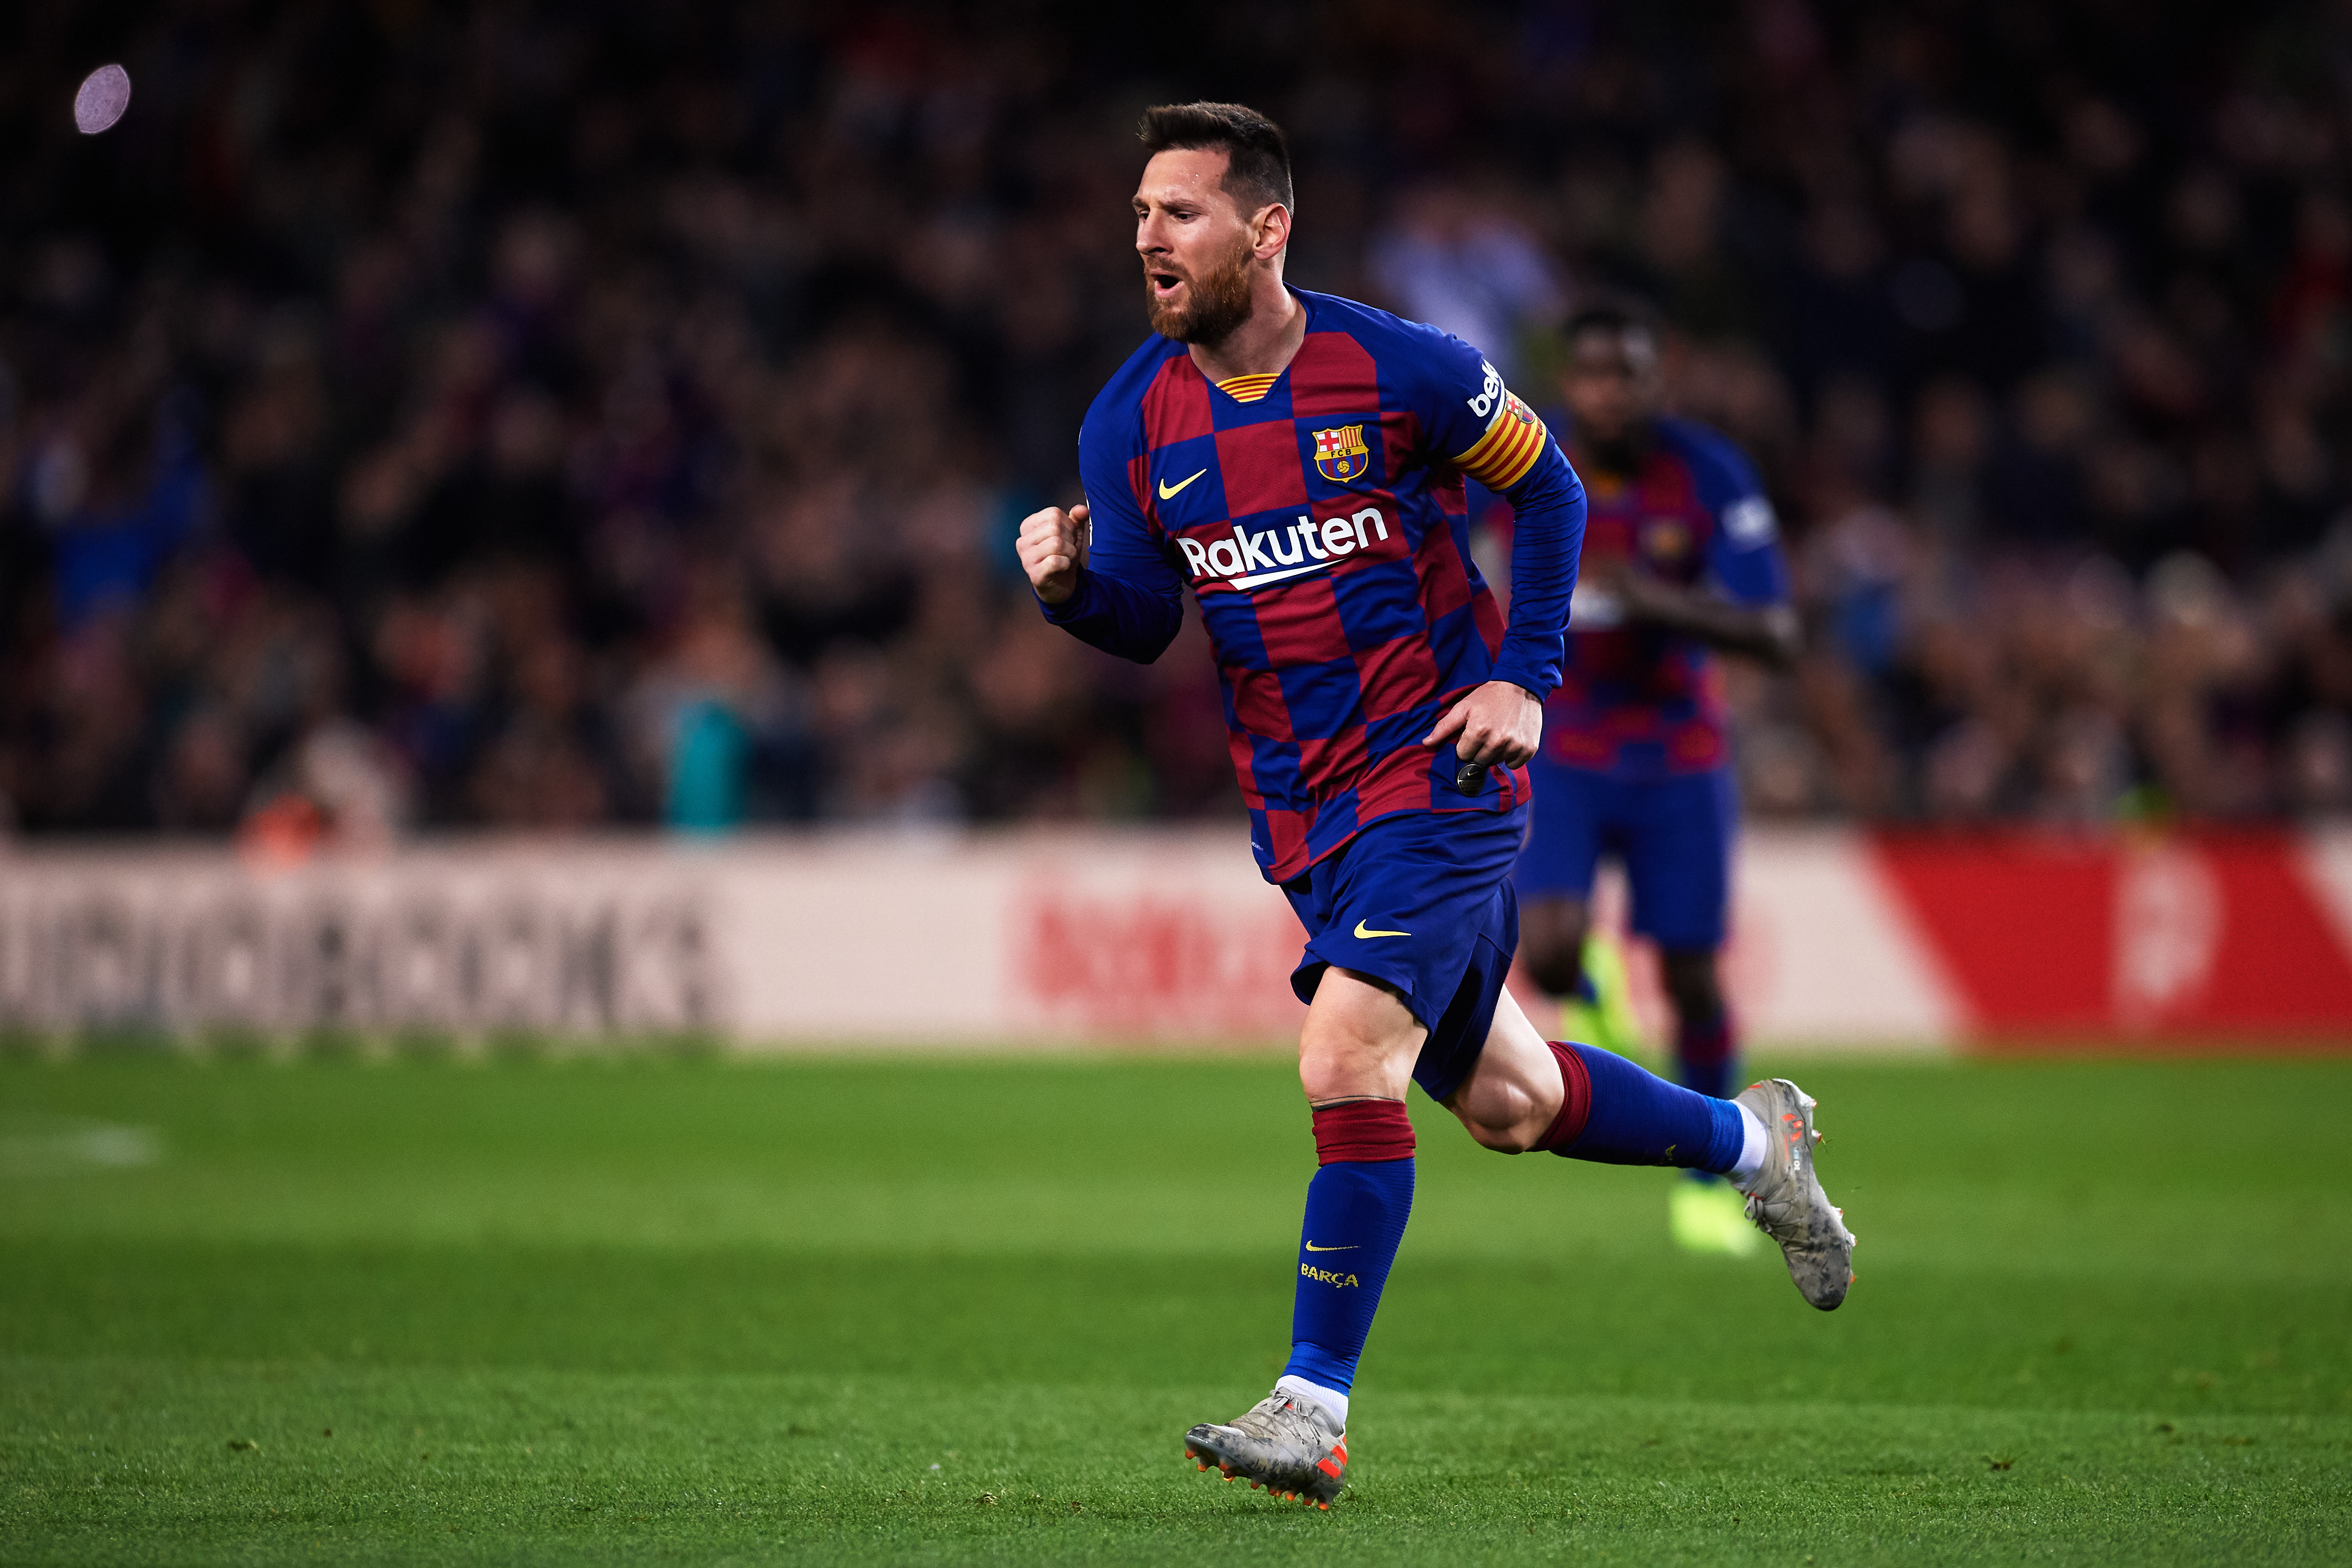 Messi will be key for Barcelona's chances (Photo by Alex Caparros/Getty Images)